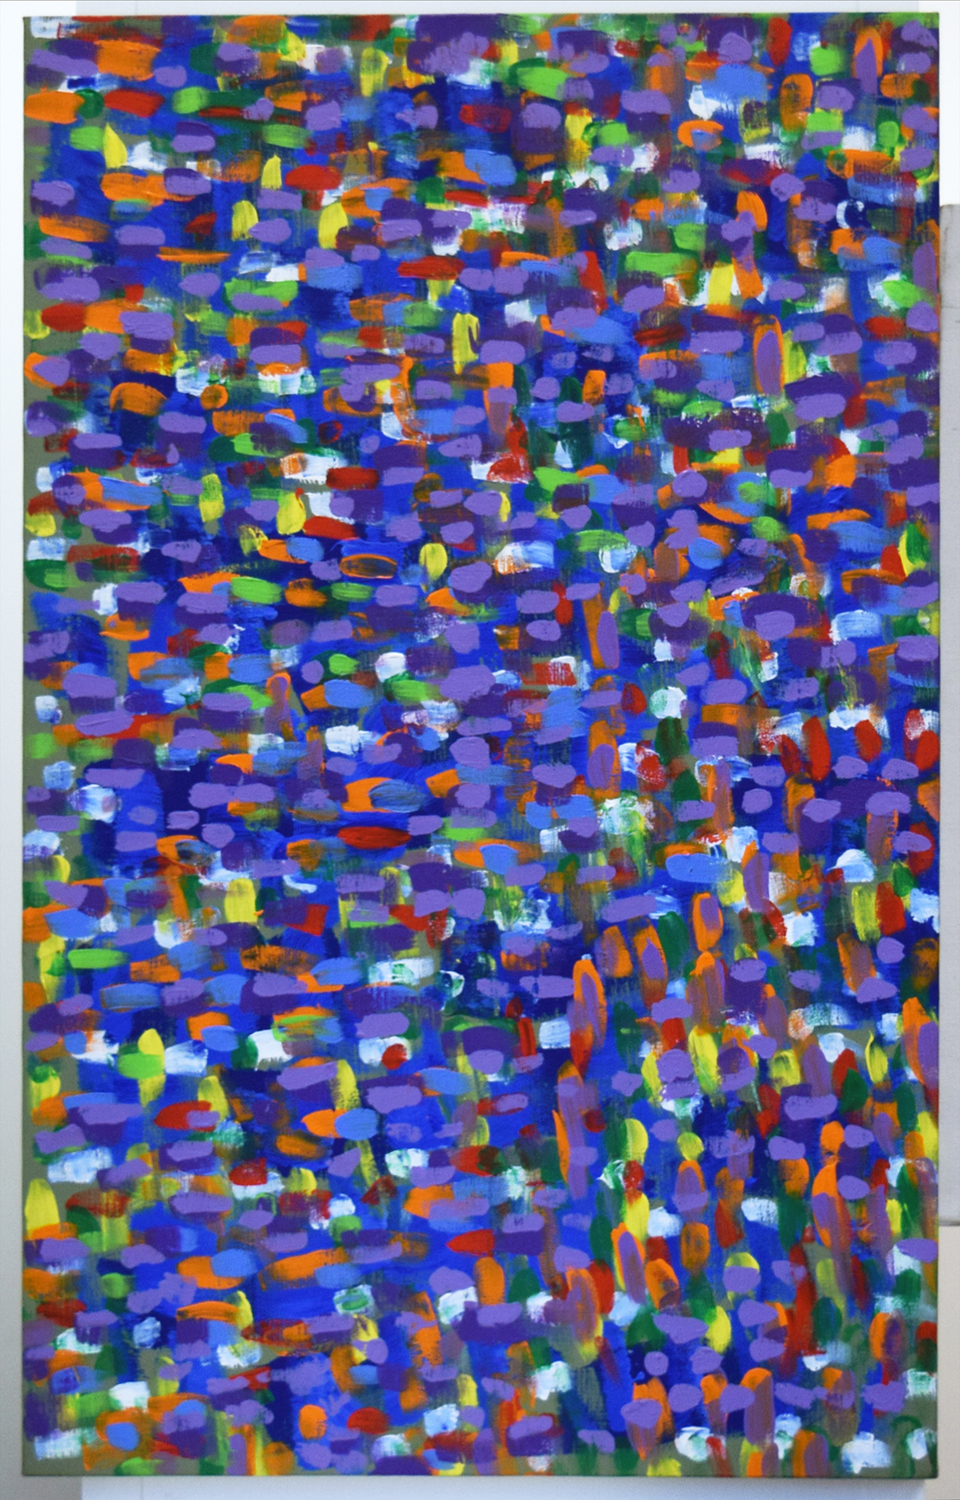 15. Kevin Merritt, 'Nature's Kaleidoscope of Colour', 2015, acrylic on Belgian linen, $1,400.jpg